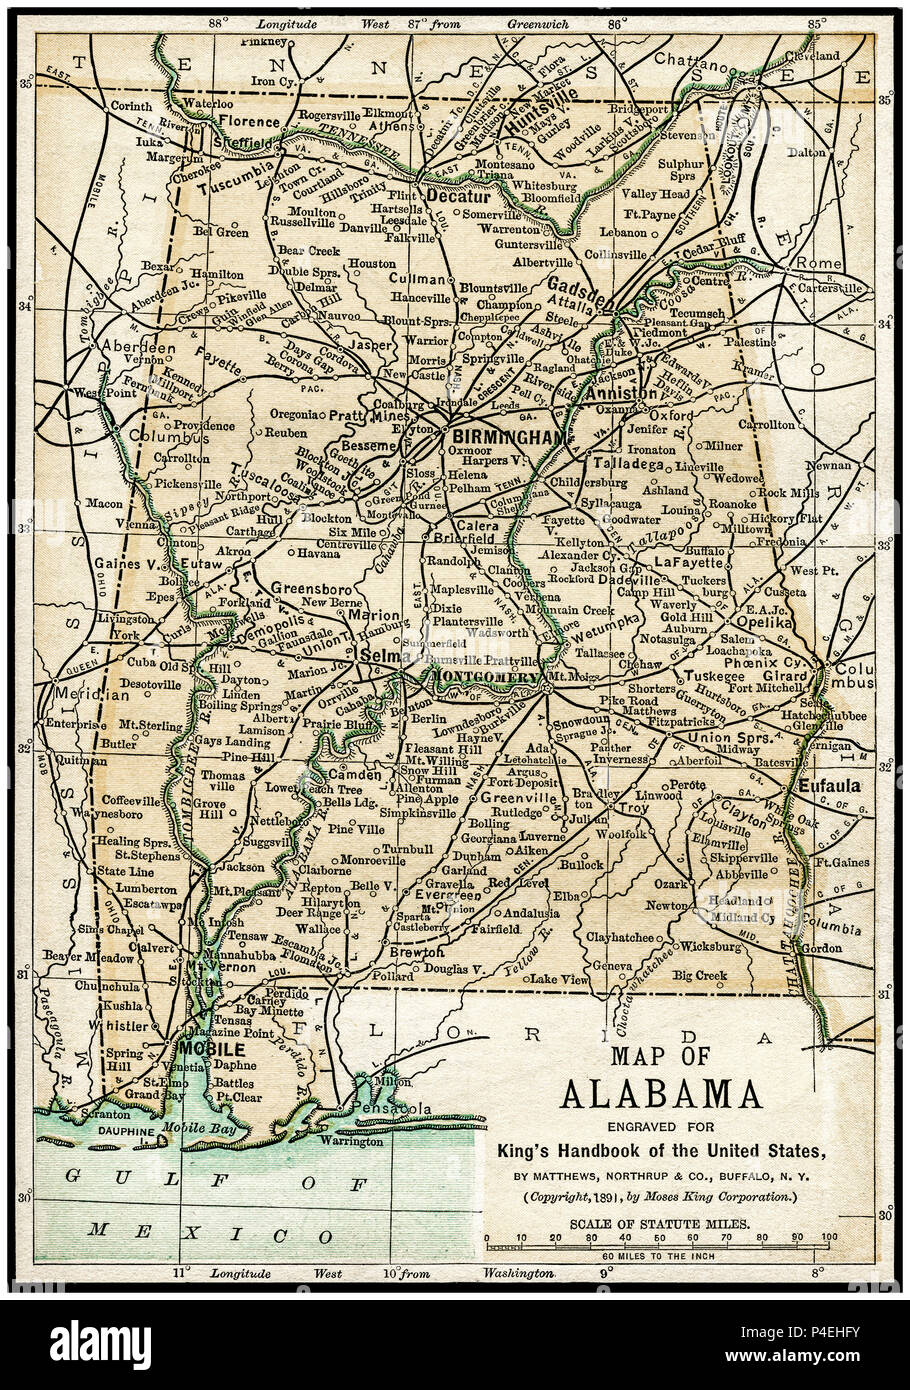 Vintage Map Of Alabama Stock Photos & Vintage Map Of Alabama ... on highway map of alabama, books of alabama, old county road map alabama, cities and towns in alabama, map of mount vernon alabama, map of places to visit in alabama, old railroad maps alabama, map of mississippi and alabama, old maps vermont, mountain ranges map of alabama, old houses in mobile alabama, old maps nebraska, old maps maryland, old california maps, old maps minnesota, physical map of alabama, old federal road jasper alabama, fort stoddert alabama, large map of alabama, the map of alabama,